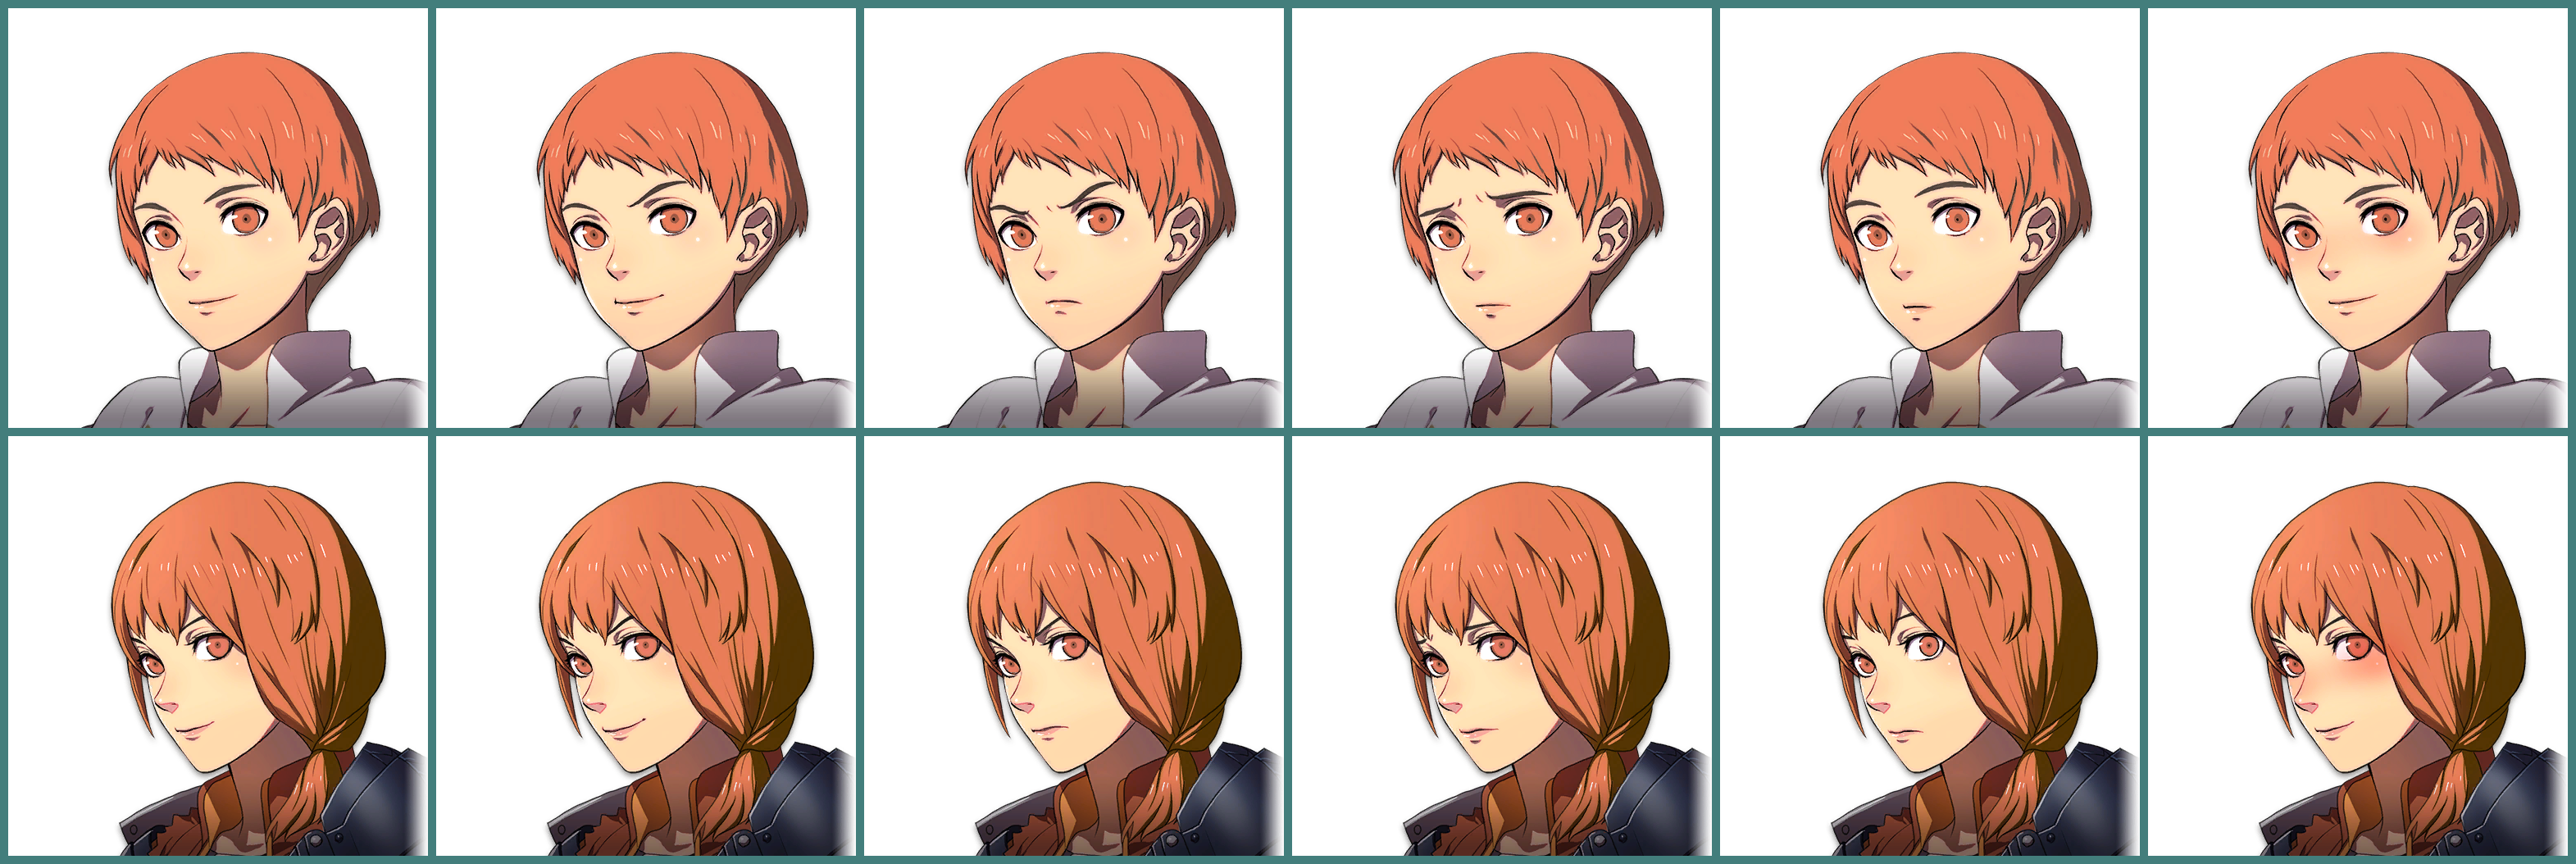 Nintendo Switch Fire Emblem Three Houses Leonie The Spriters Resource I might be here a while. fire emblem three houses leonie